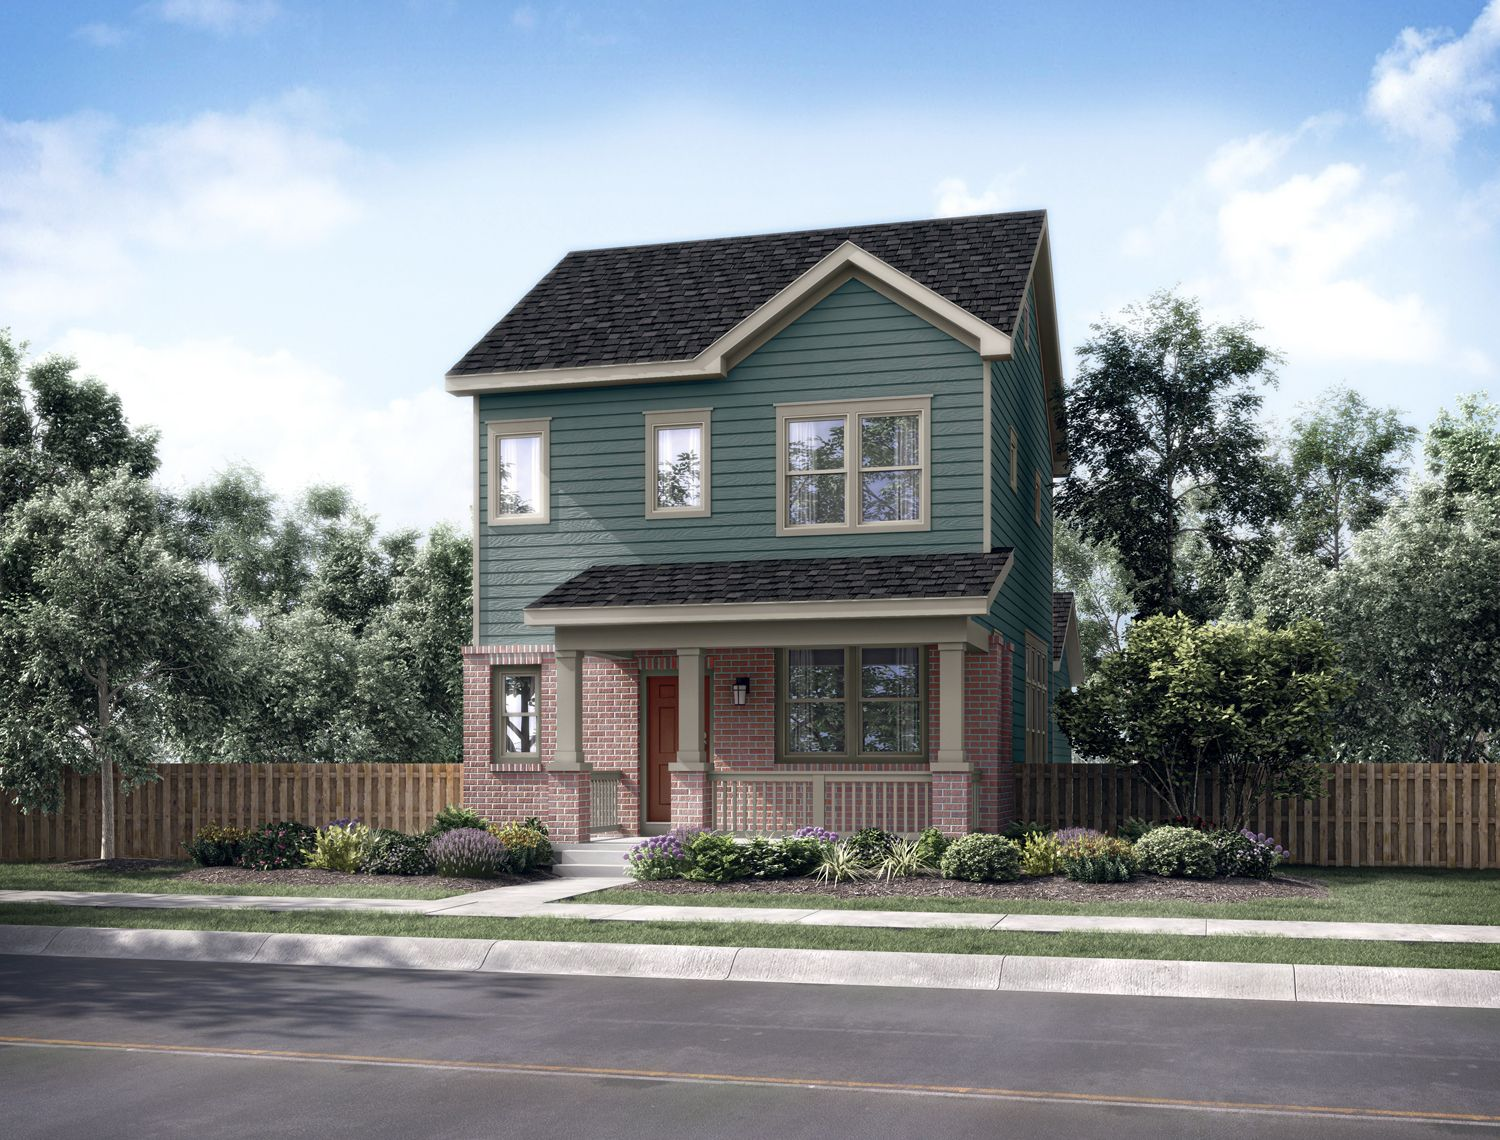 Solaris iii new homes in aurora co by thrive home builders for Thrive homes denver